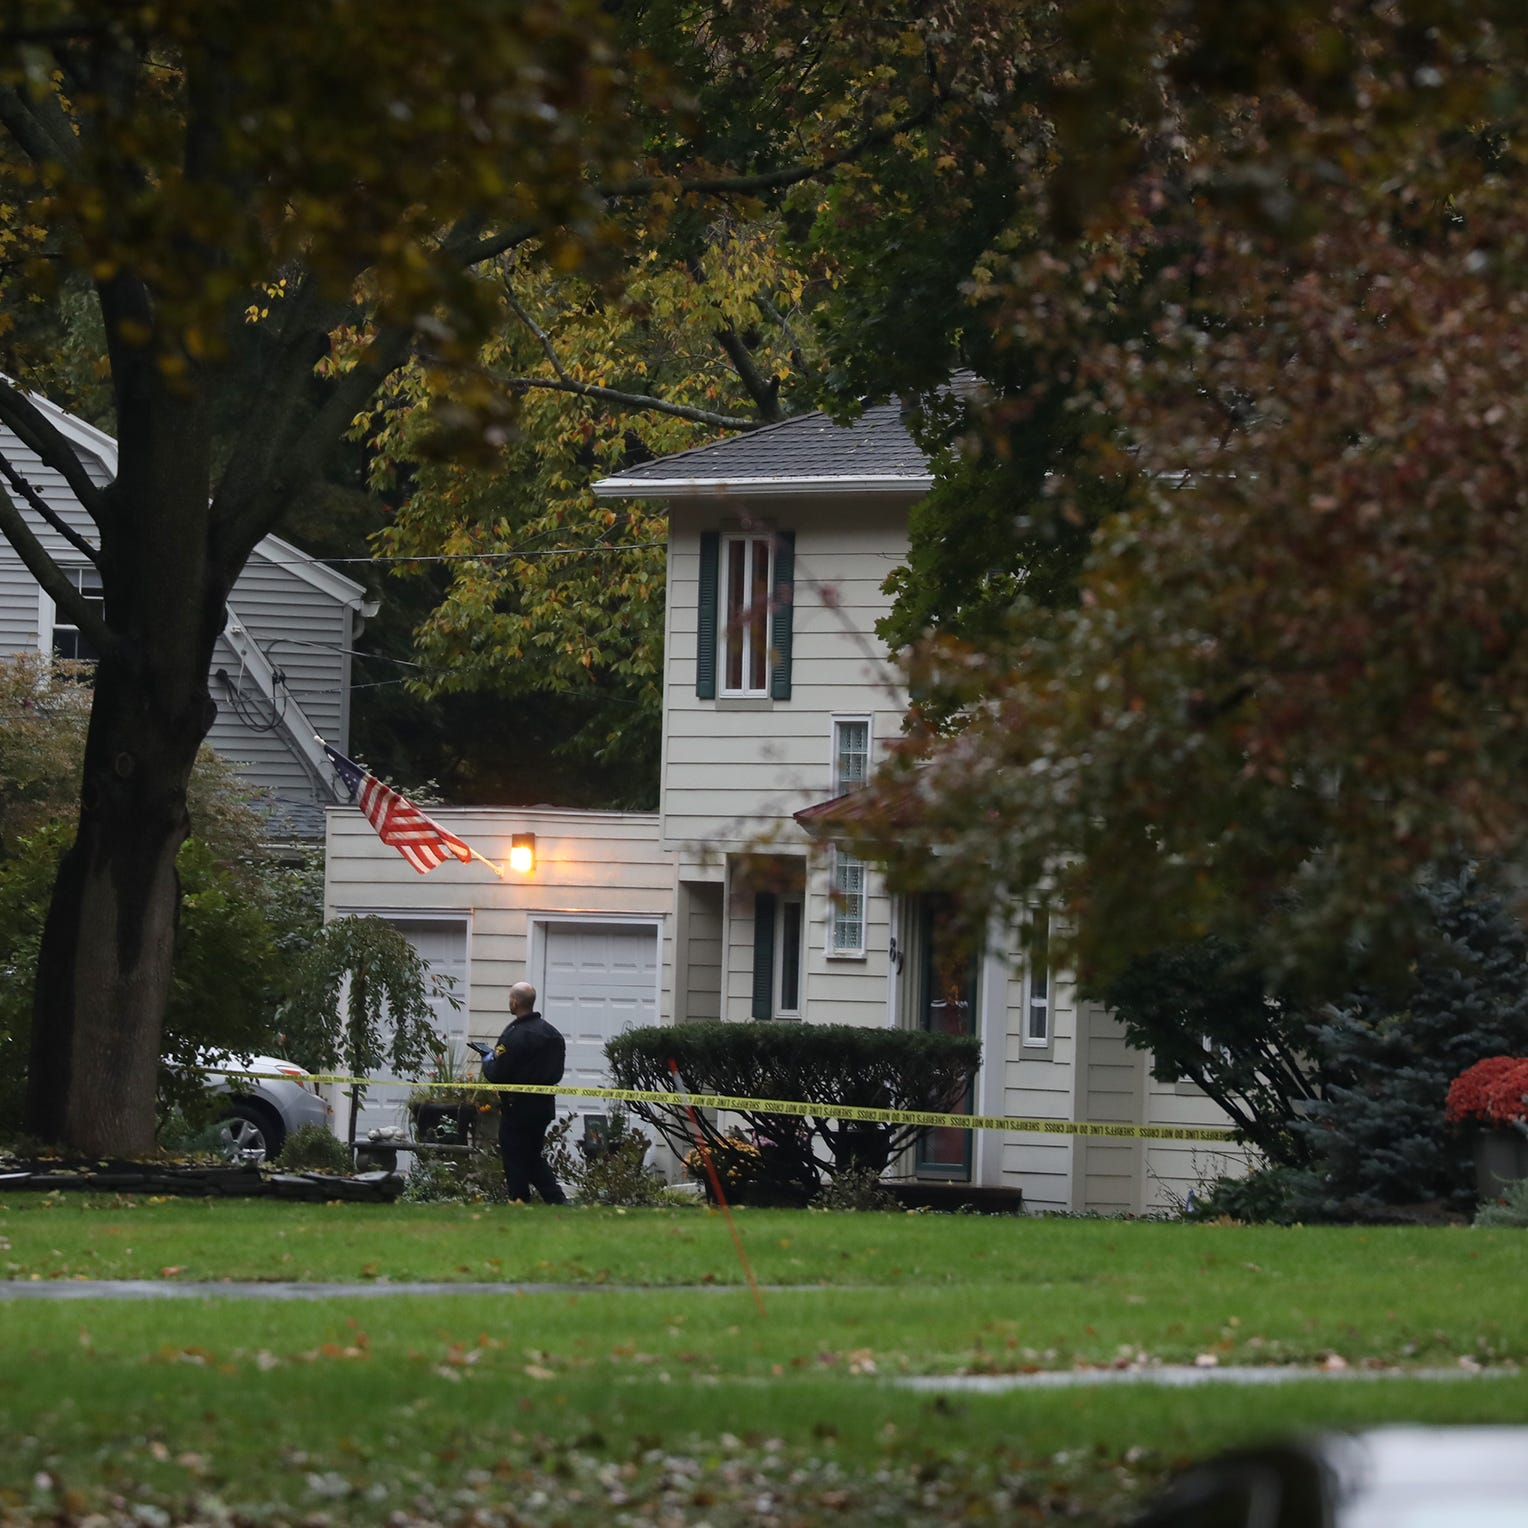 Sheriff's Office releases name of woman found dead in Penfield home Oct. 31